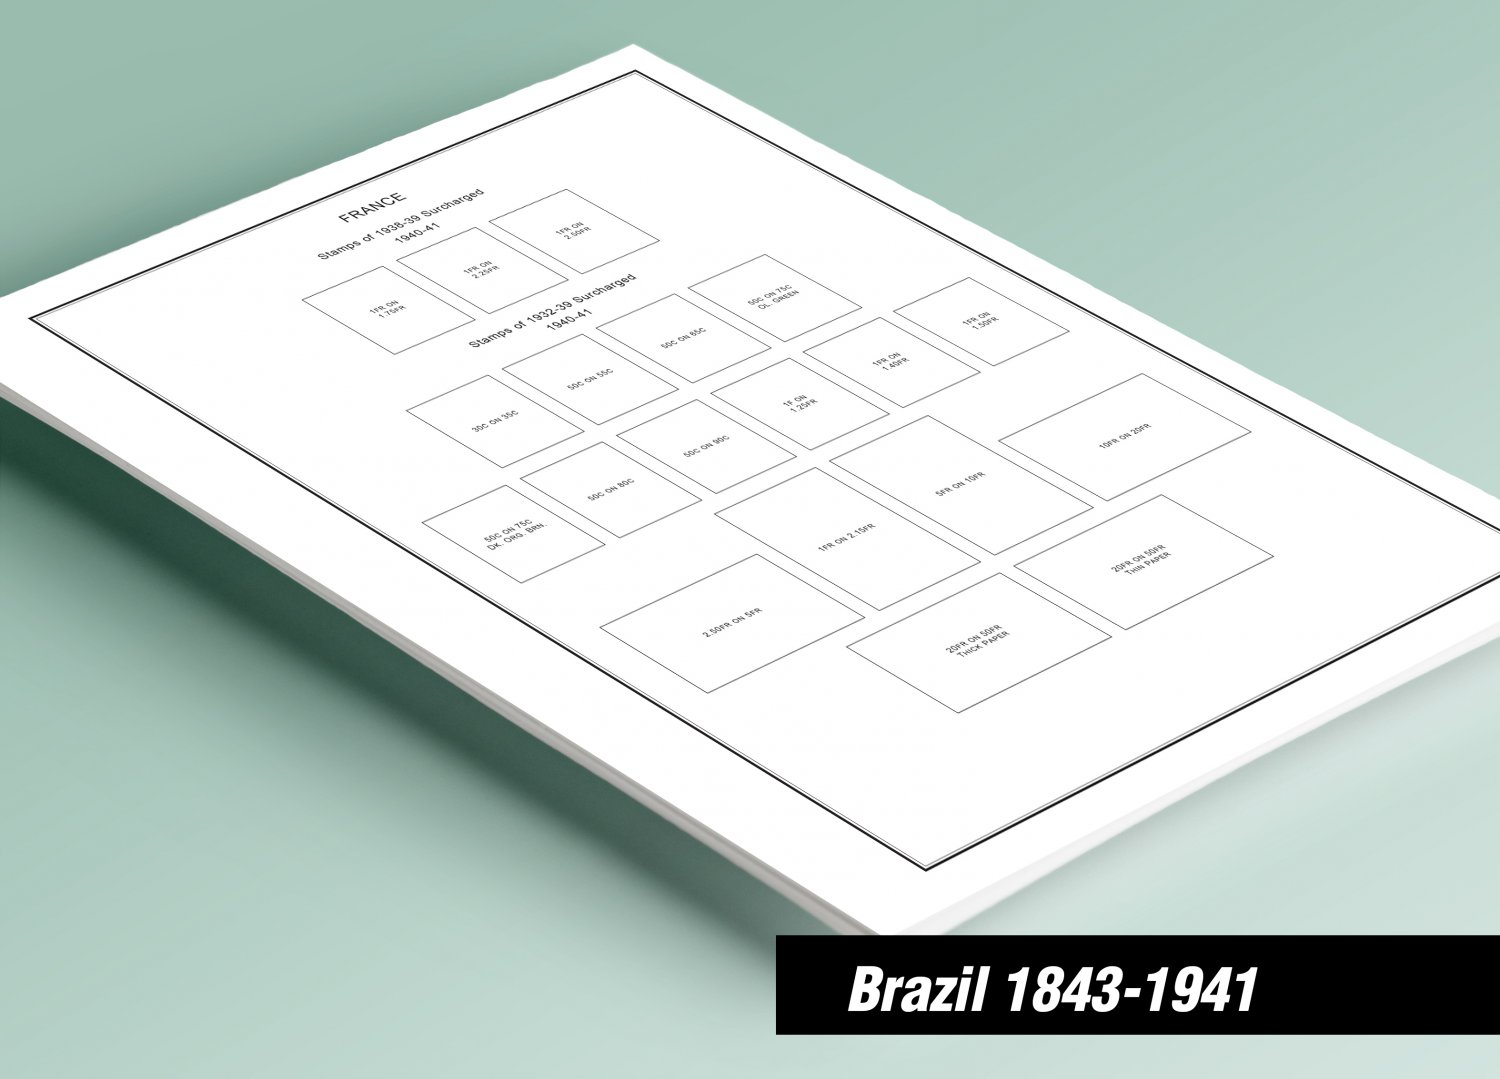 PRINTED BRAZIL [CLASS.] 1843-1941 STAMP ALBUM PAGES (53 pages)